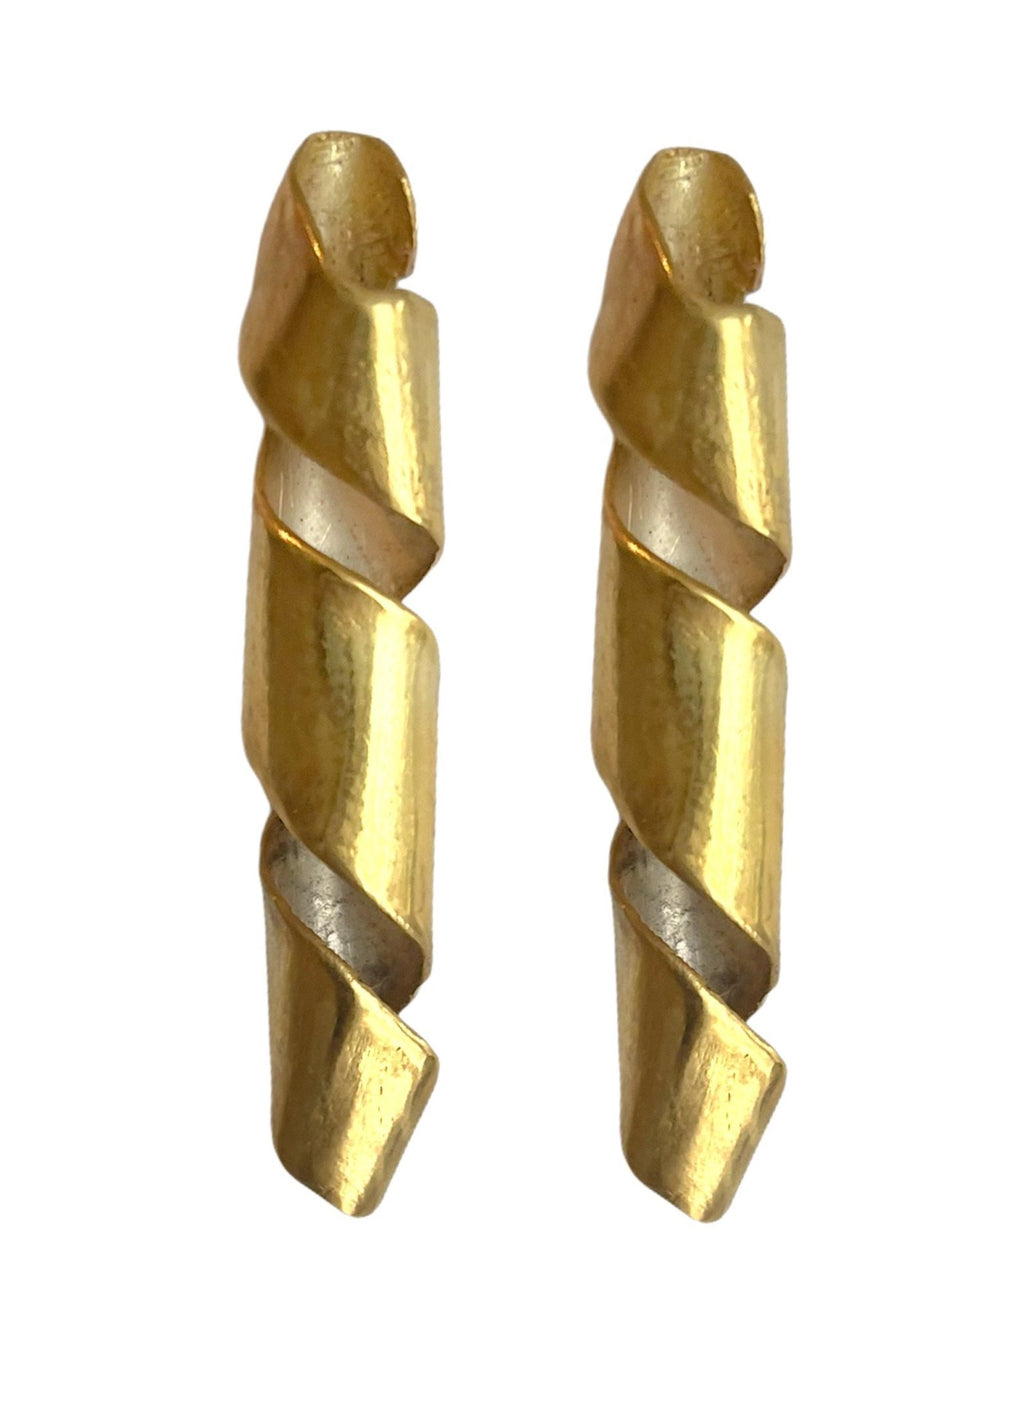 Theseus Earrings 24K gold plating over 925 Recycled Silver, Made to order- 14 days lead time